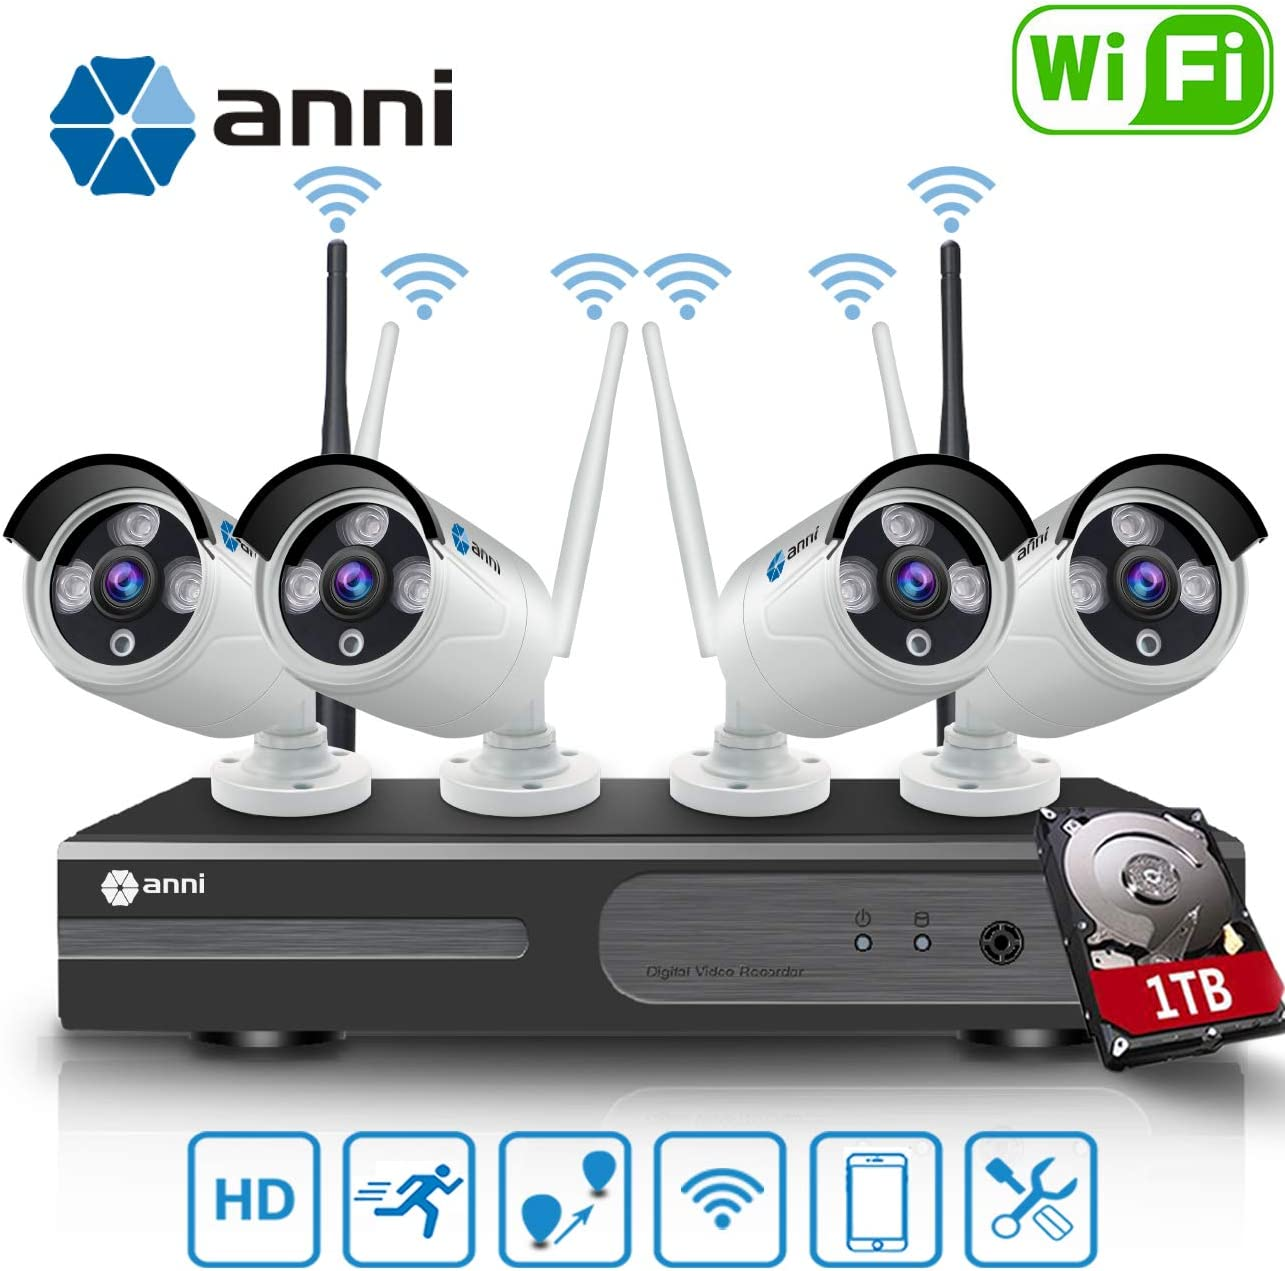 Anni 1080P 4CH HD WiFi NVR Kit Wireless Security Camera CCTV Surveillance Systems, 4 2.0MP Megapixel Weatherproof Wireless Bullet IP Cameras,65ft Night Vision,P2P,WiFi Camera System,with 1TB HDD